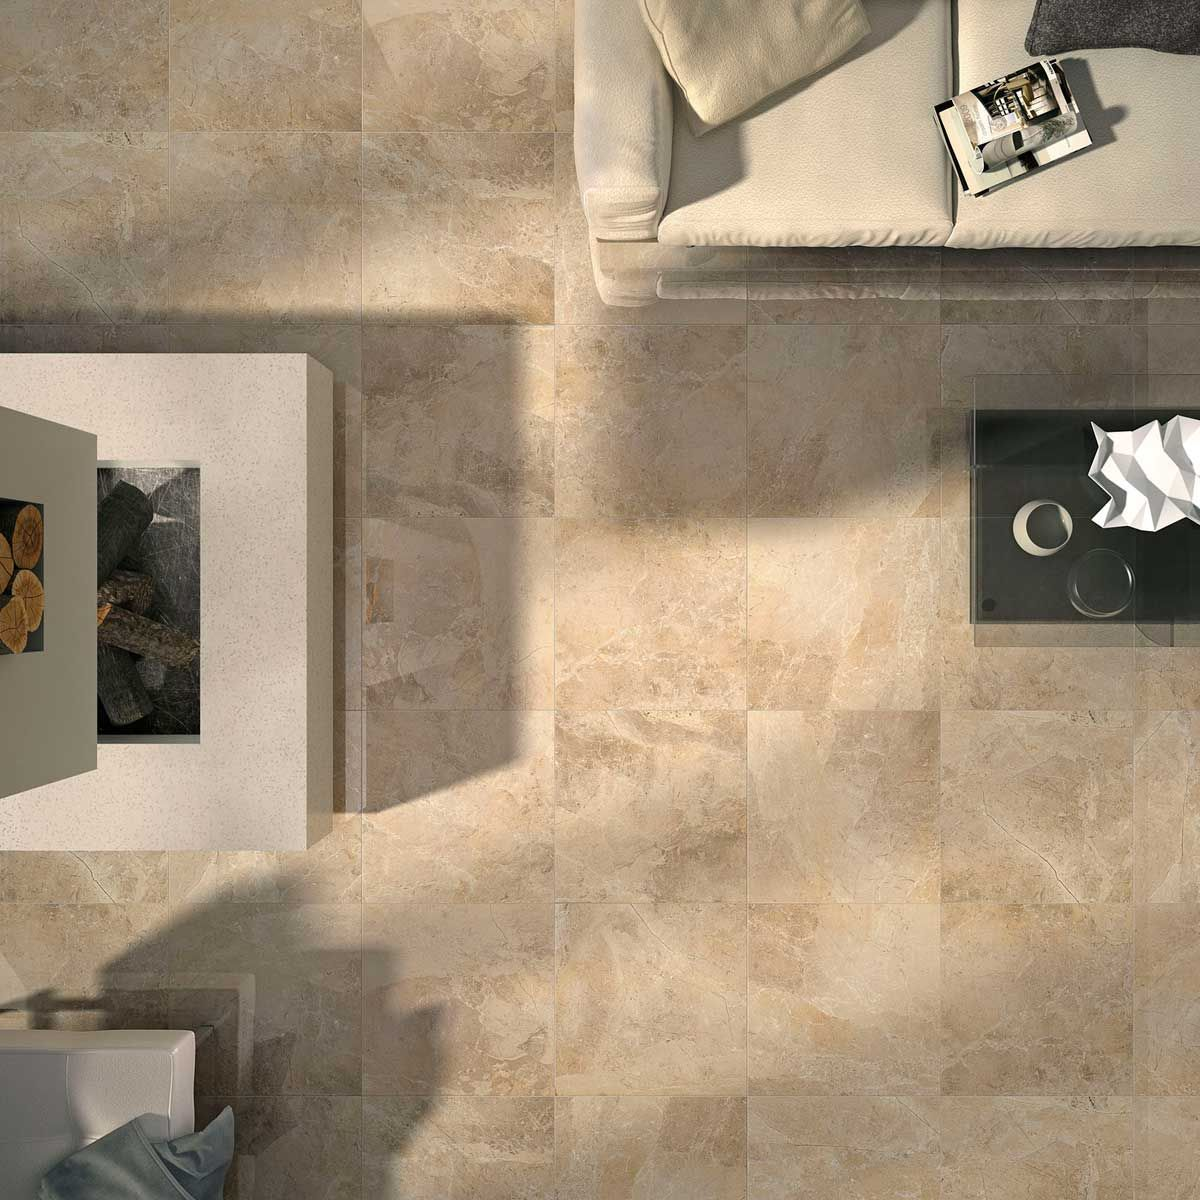 Mirage jewels encore opera beige marble look polished porcelain browse our collection of ceramic floor tiles and ceramic wall tiles for bathrooms kitchens and outdoor spaces made in italy dailygadgetfo Images